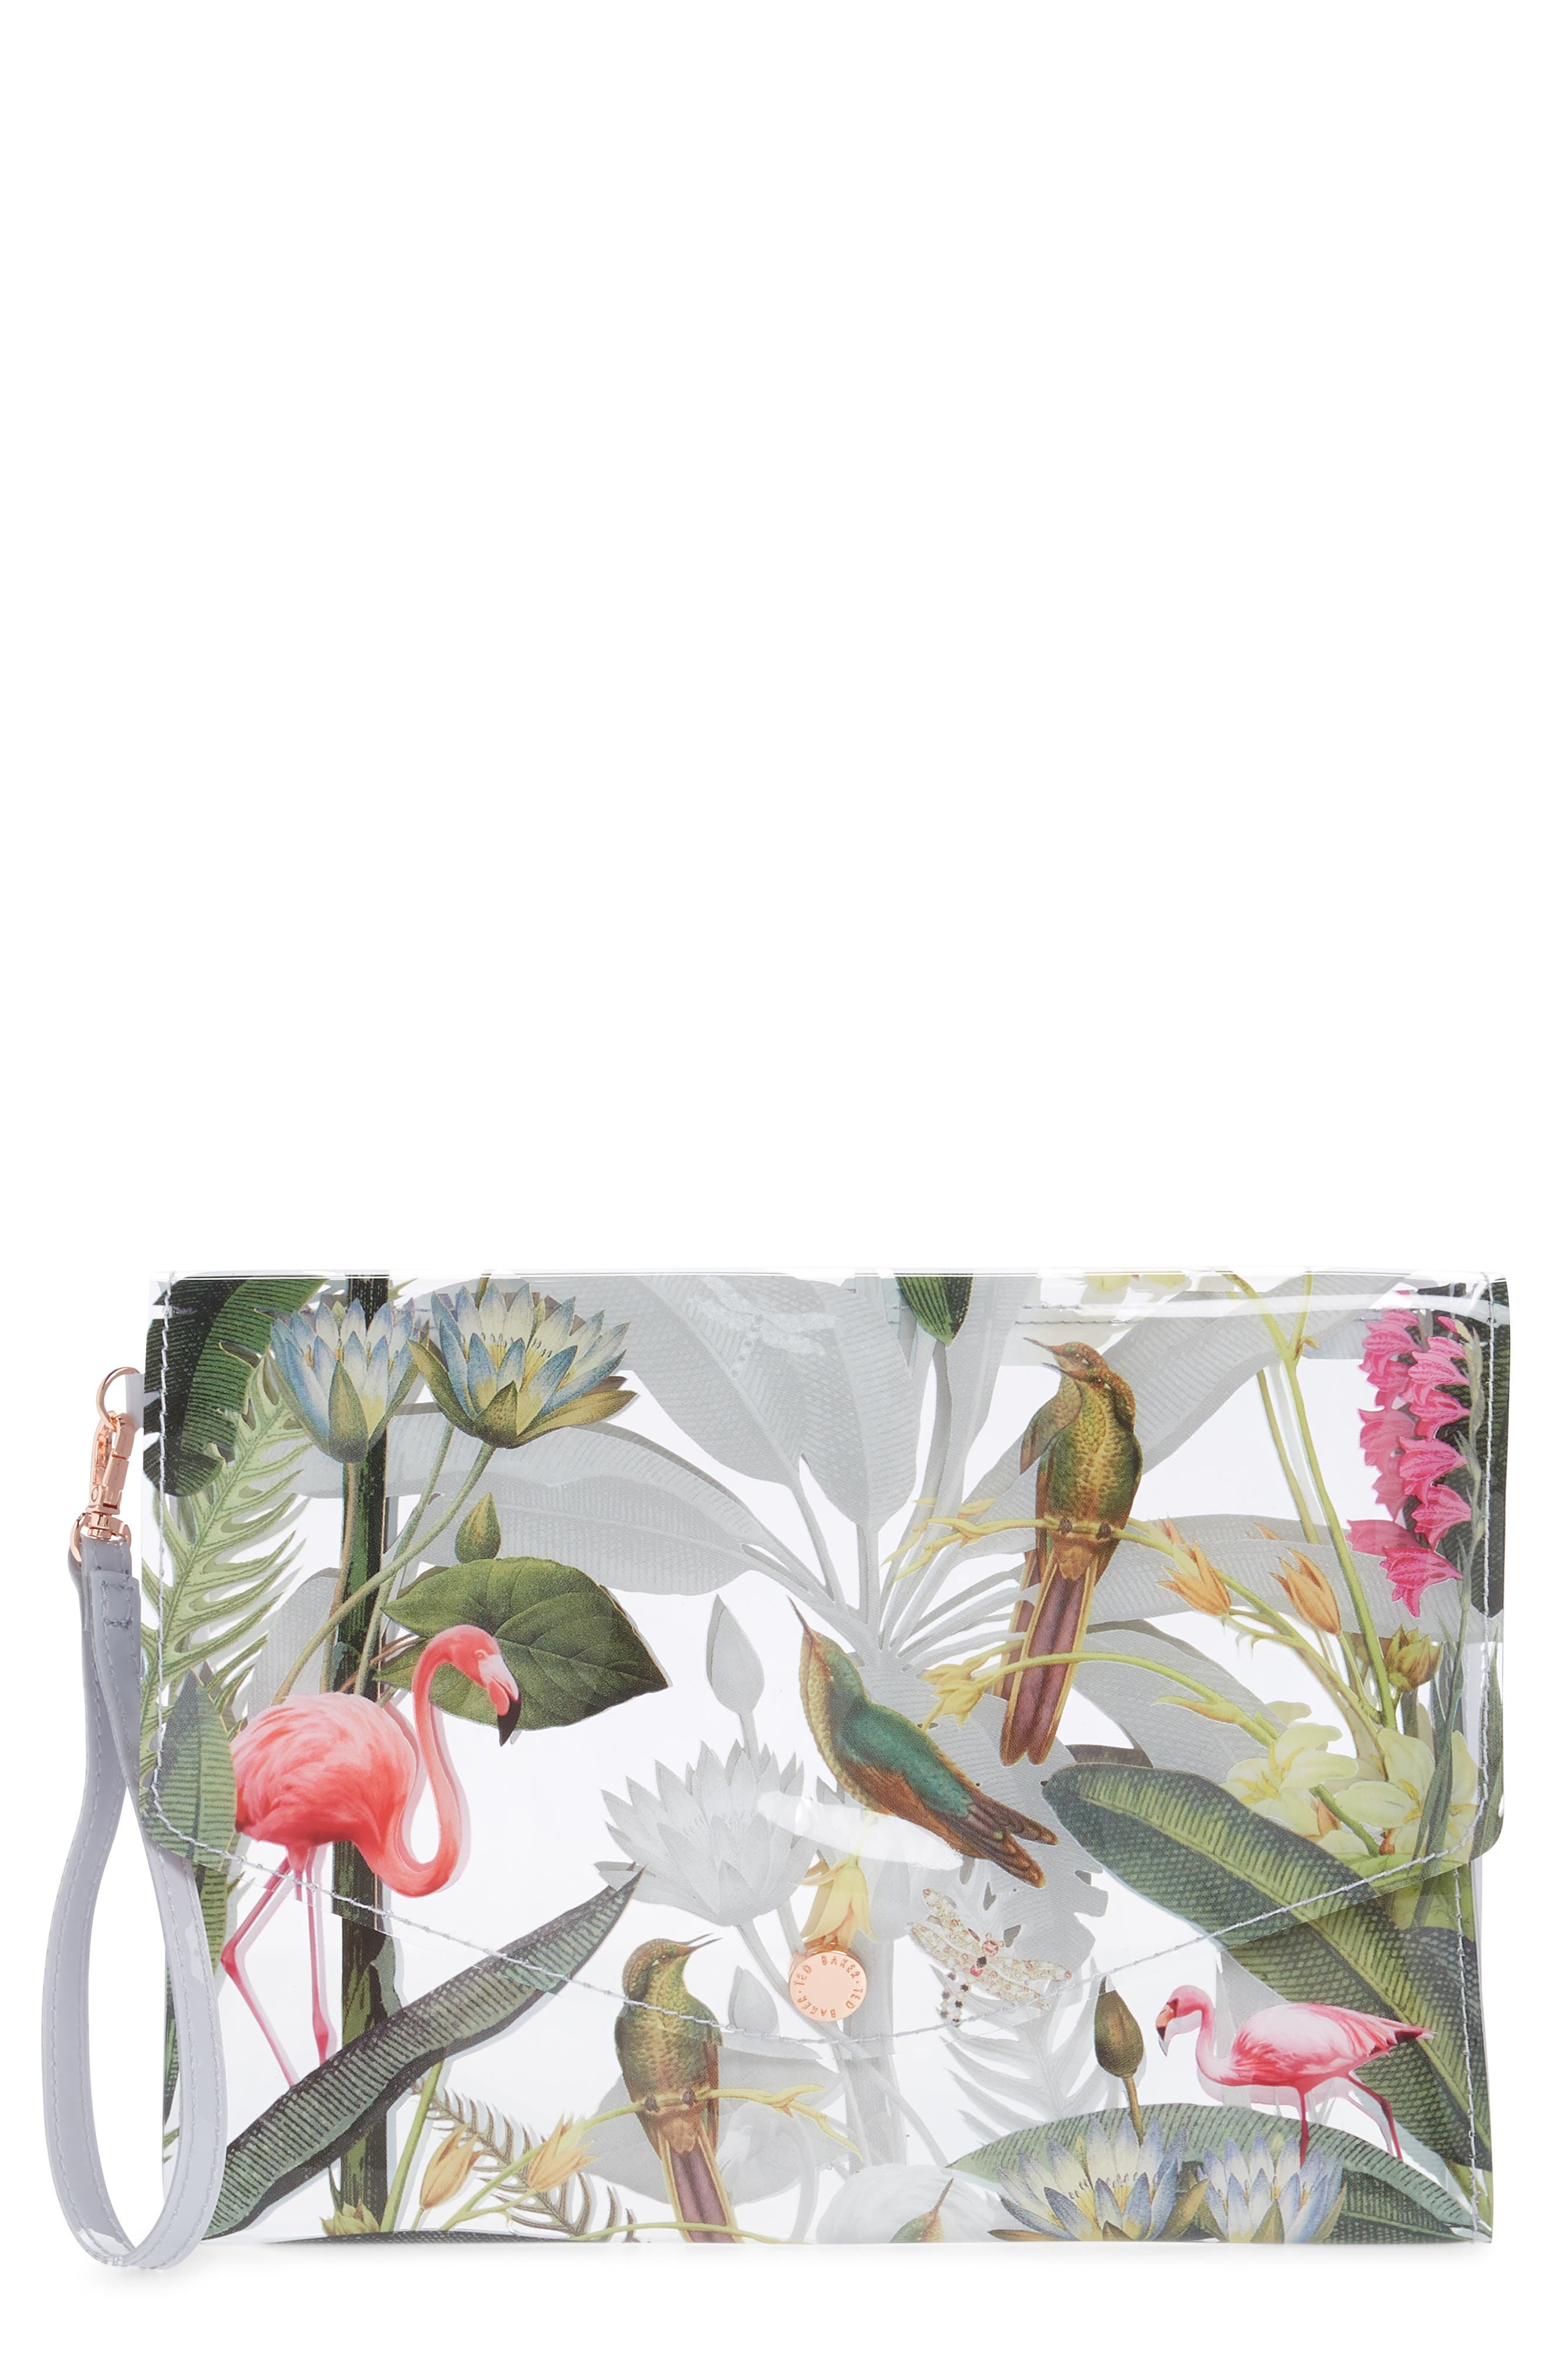 cfa6b5fb775 ted baker london pouch clutches for women - Buy best women's ted baker  london pouch clutches on Cools.com Shop